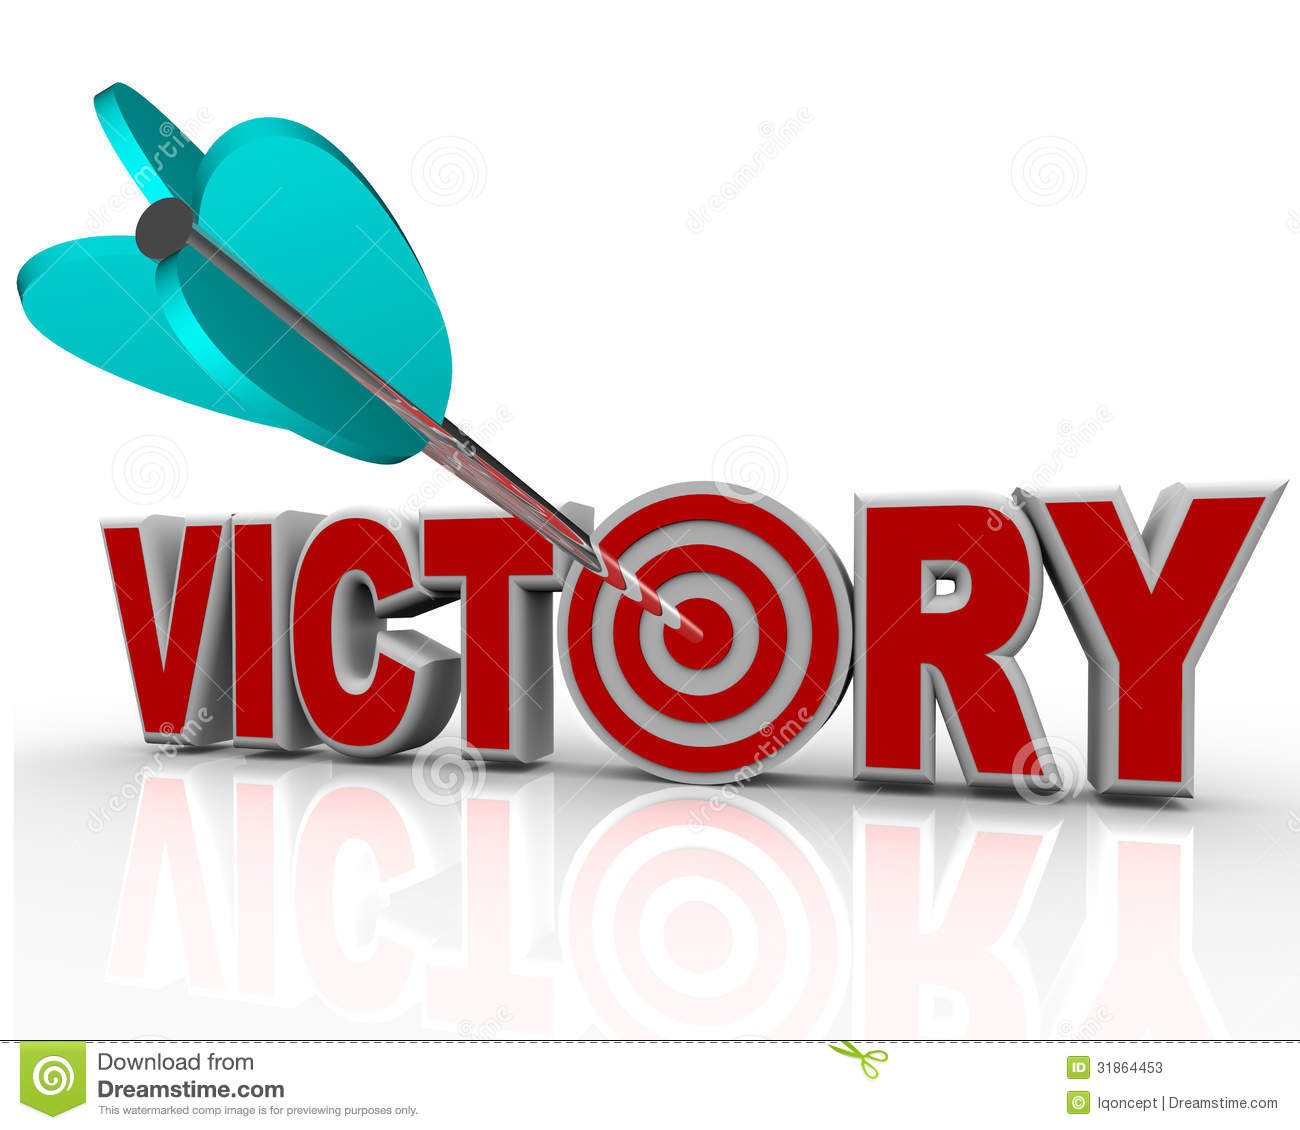 Road clipart victory #5